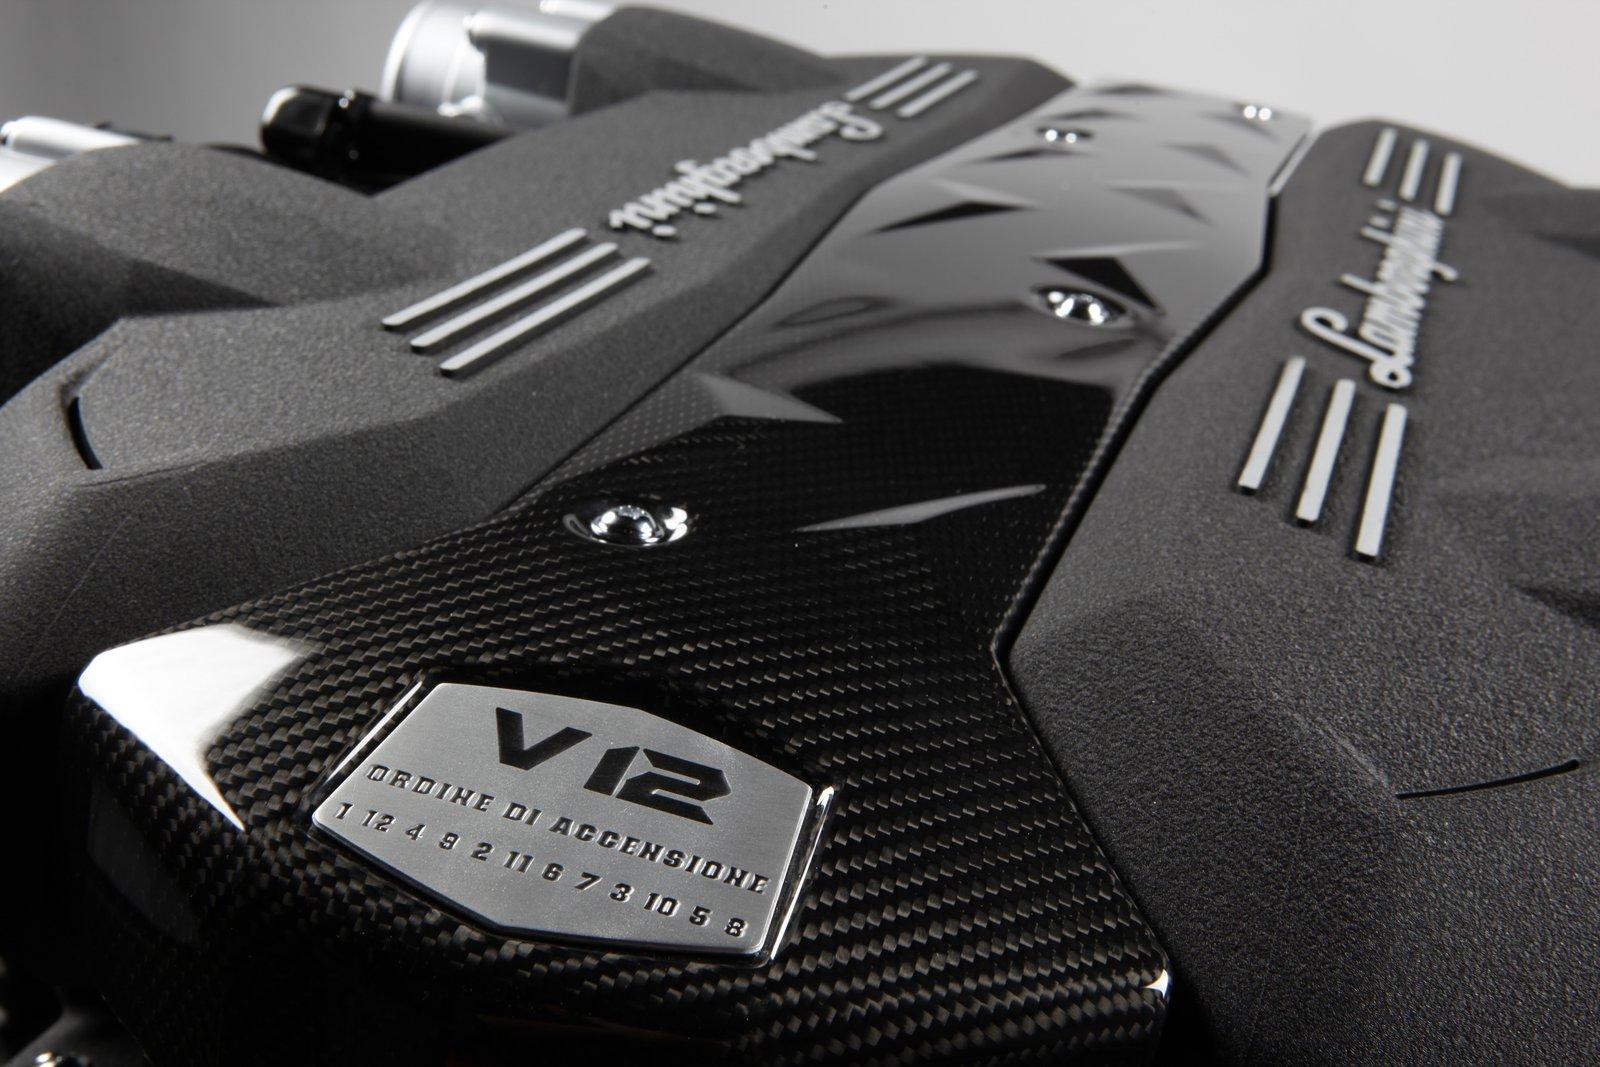 Lamborghini Reveals New 700 Horsepower V12 Engine to Power Murcielago Successor (Aventador)